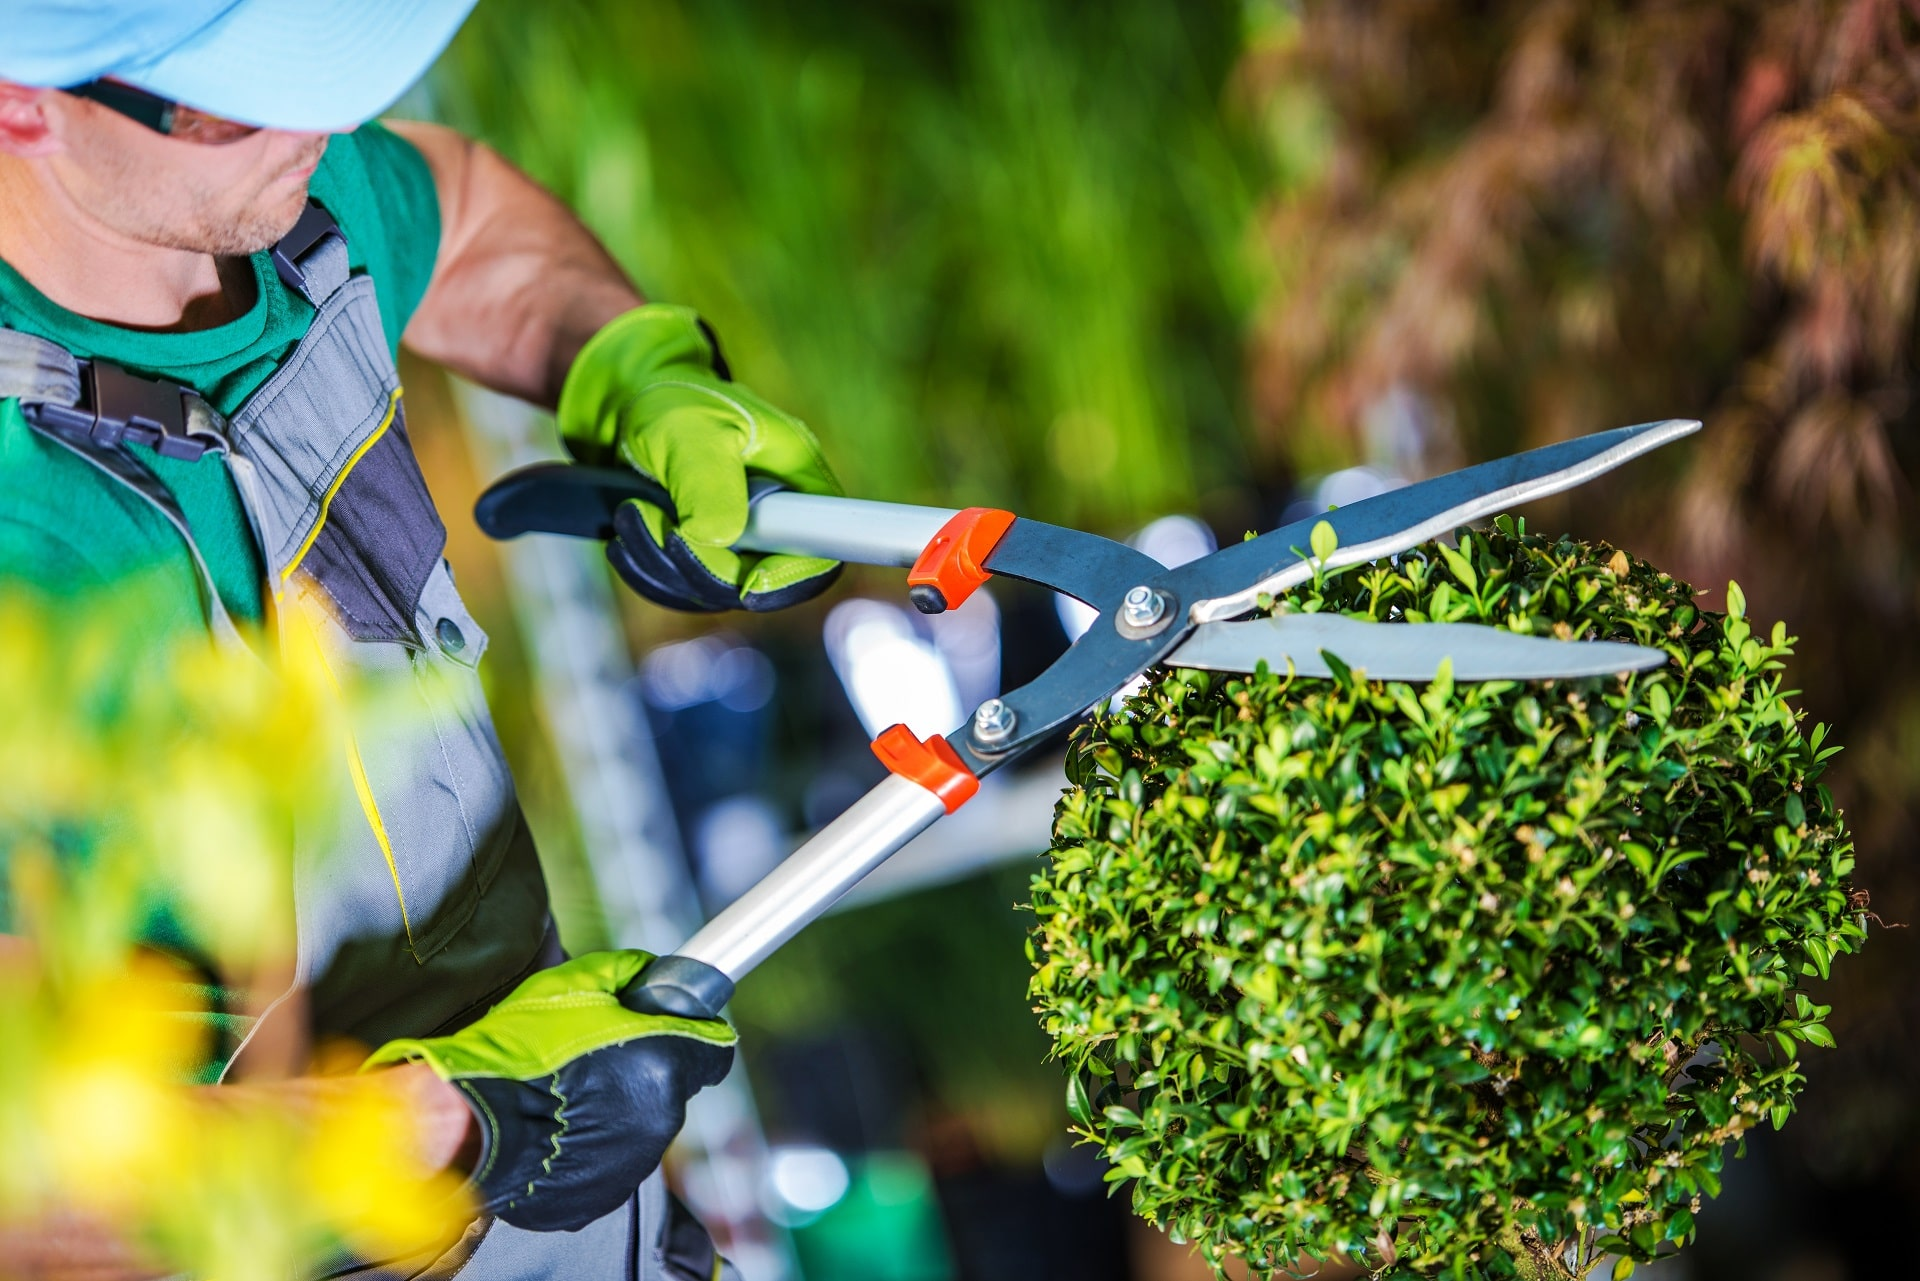 hedge-trimmers-min